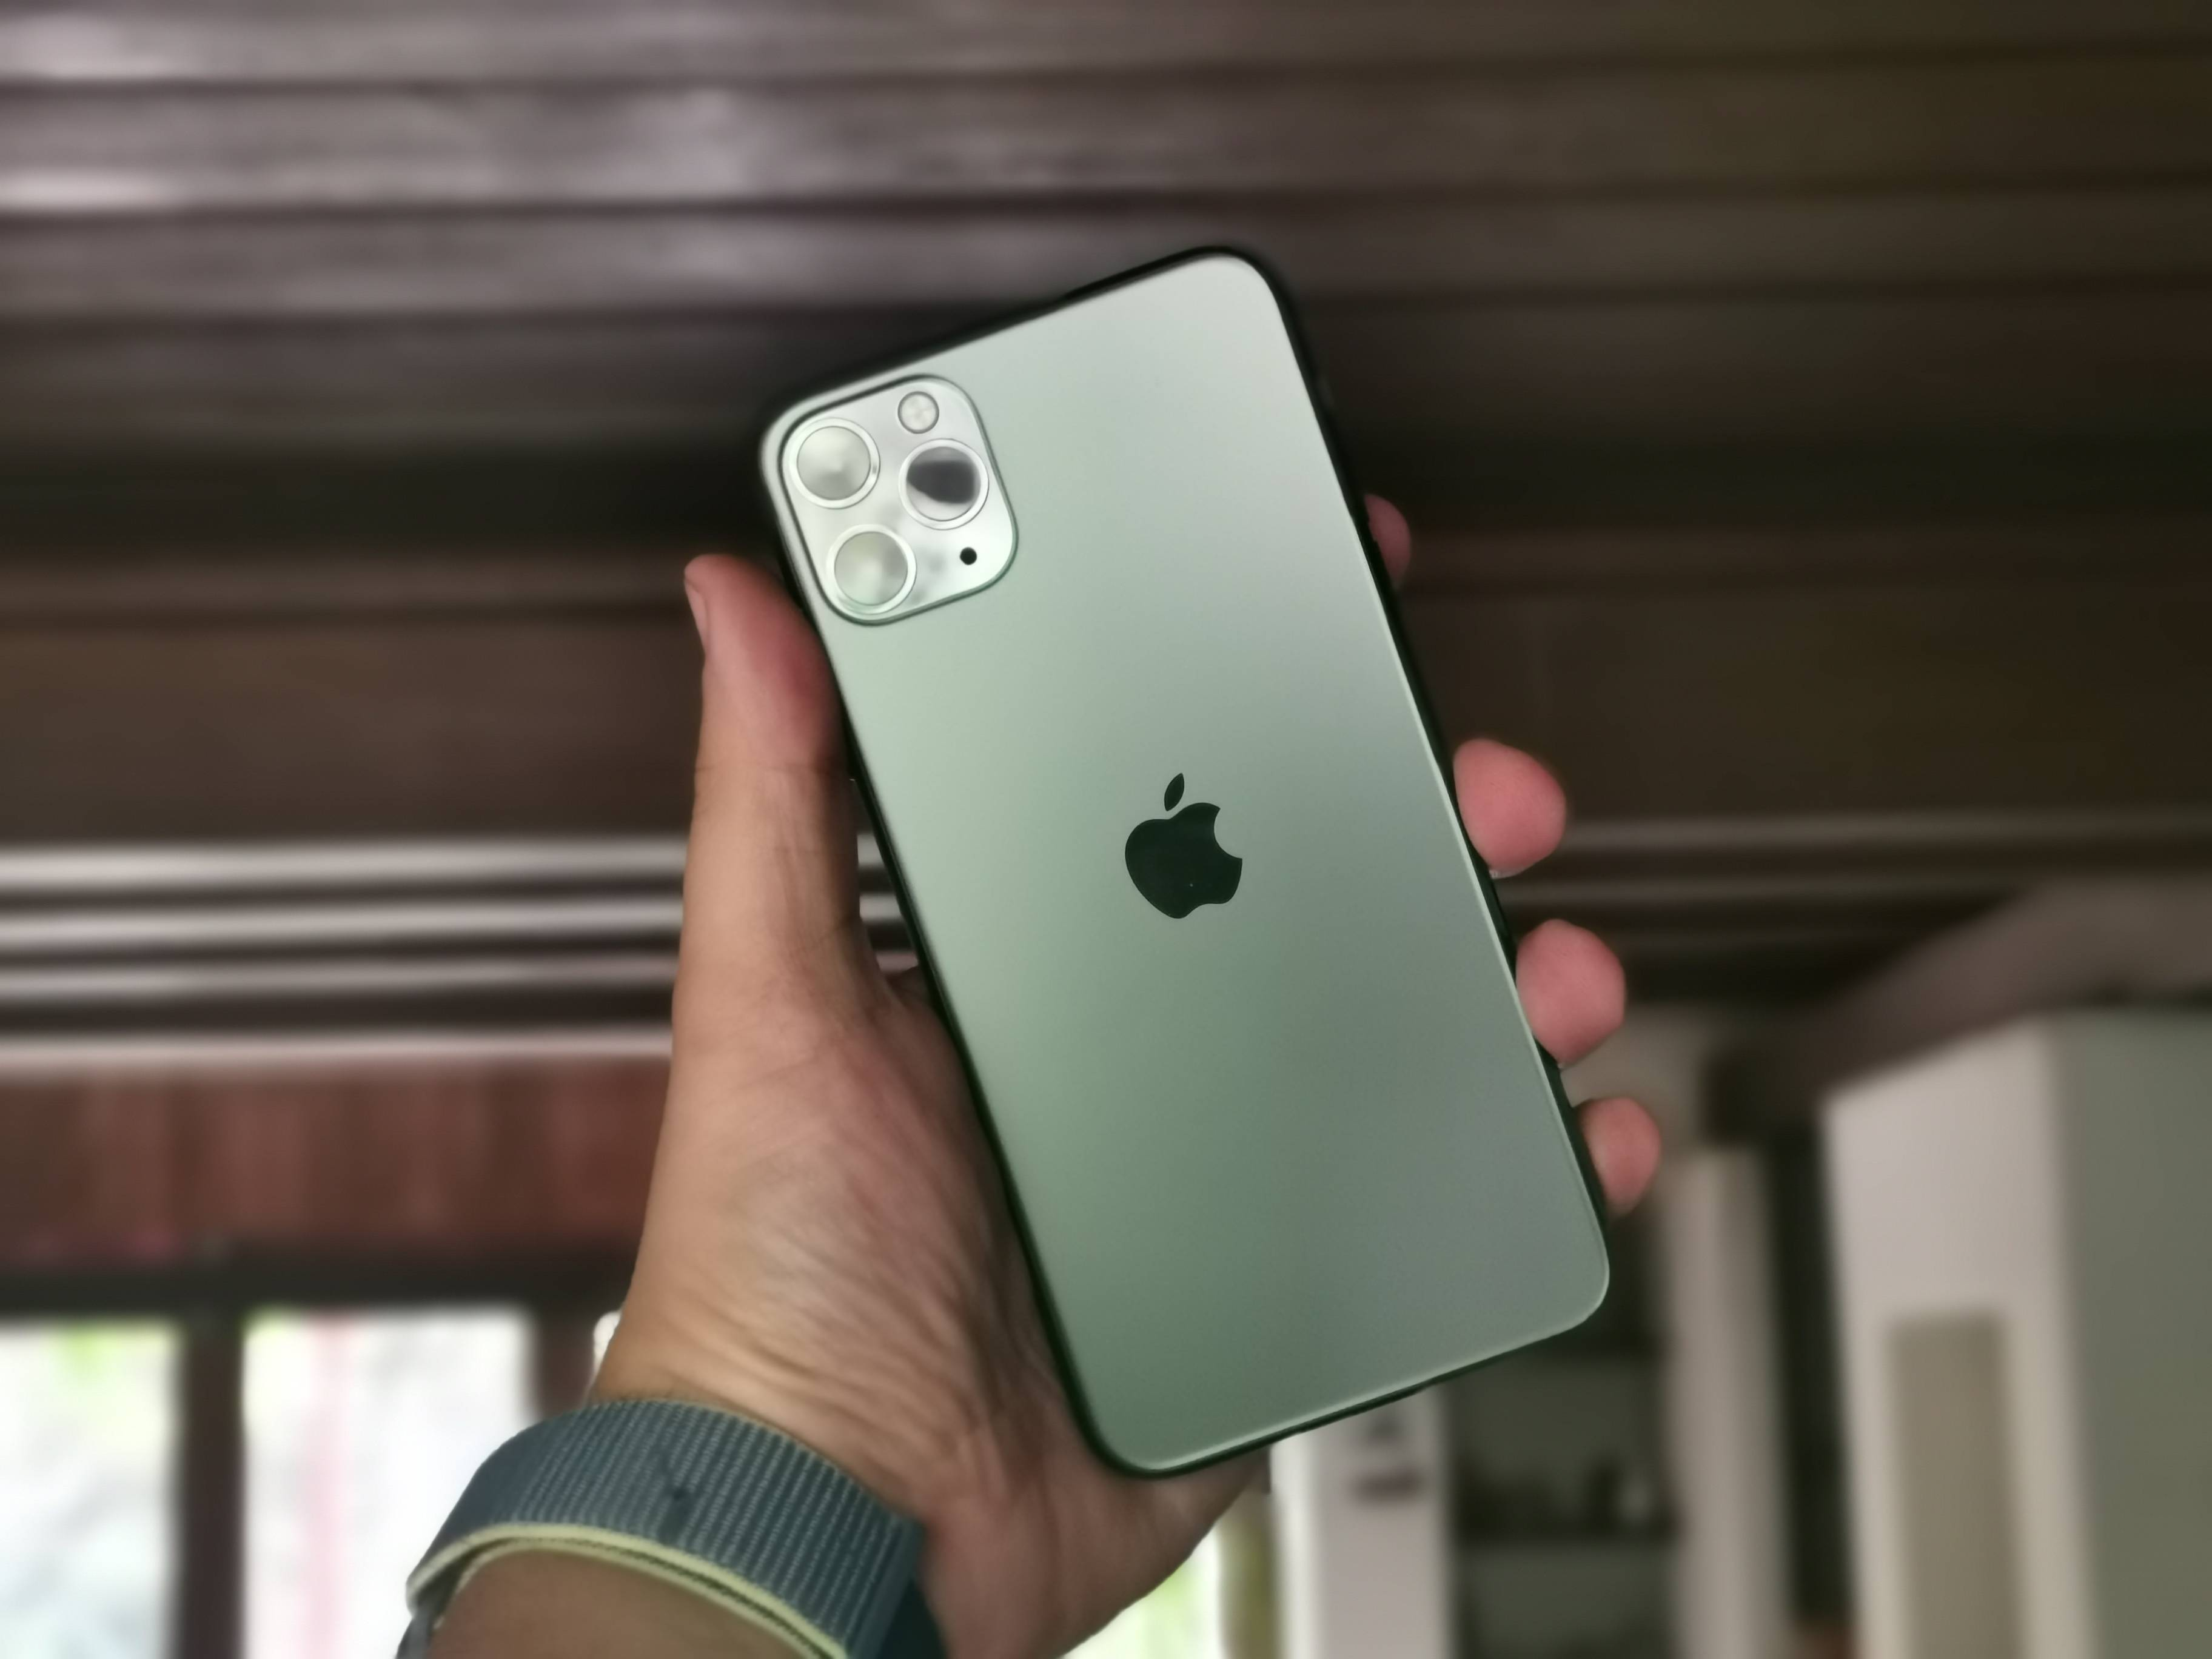 iPhone once Pro Max